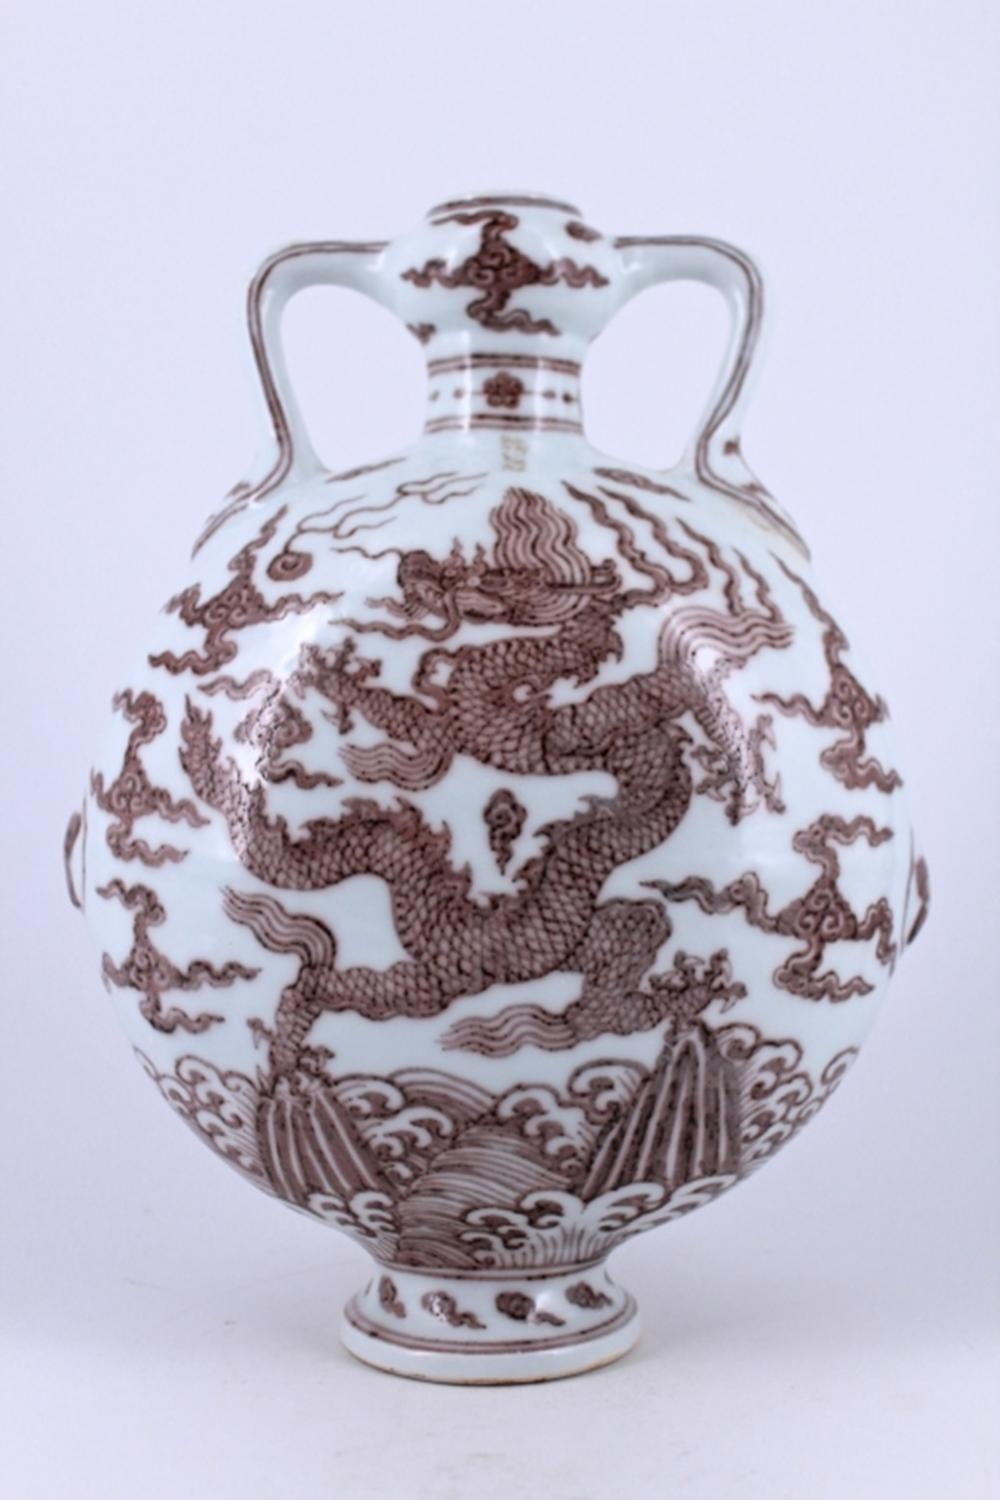 Underred Dragon Porcelain Moon Flask Ming Period